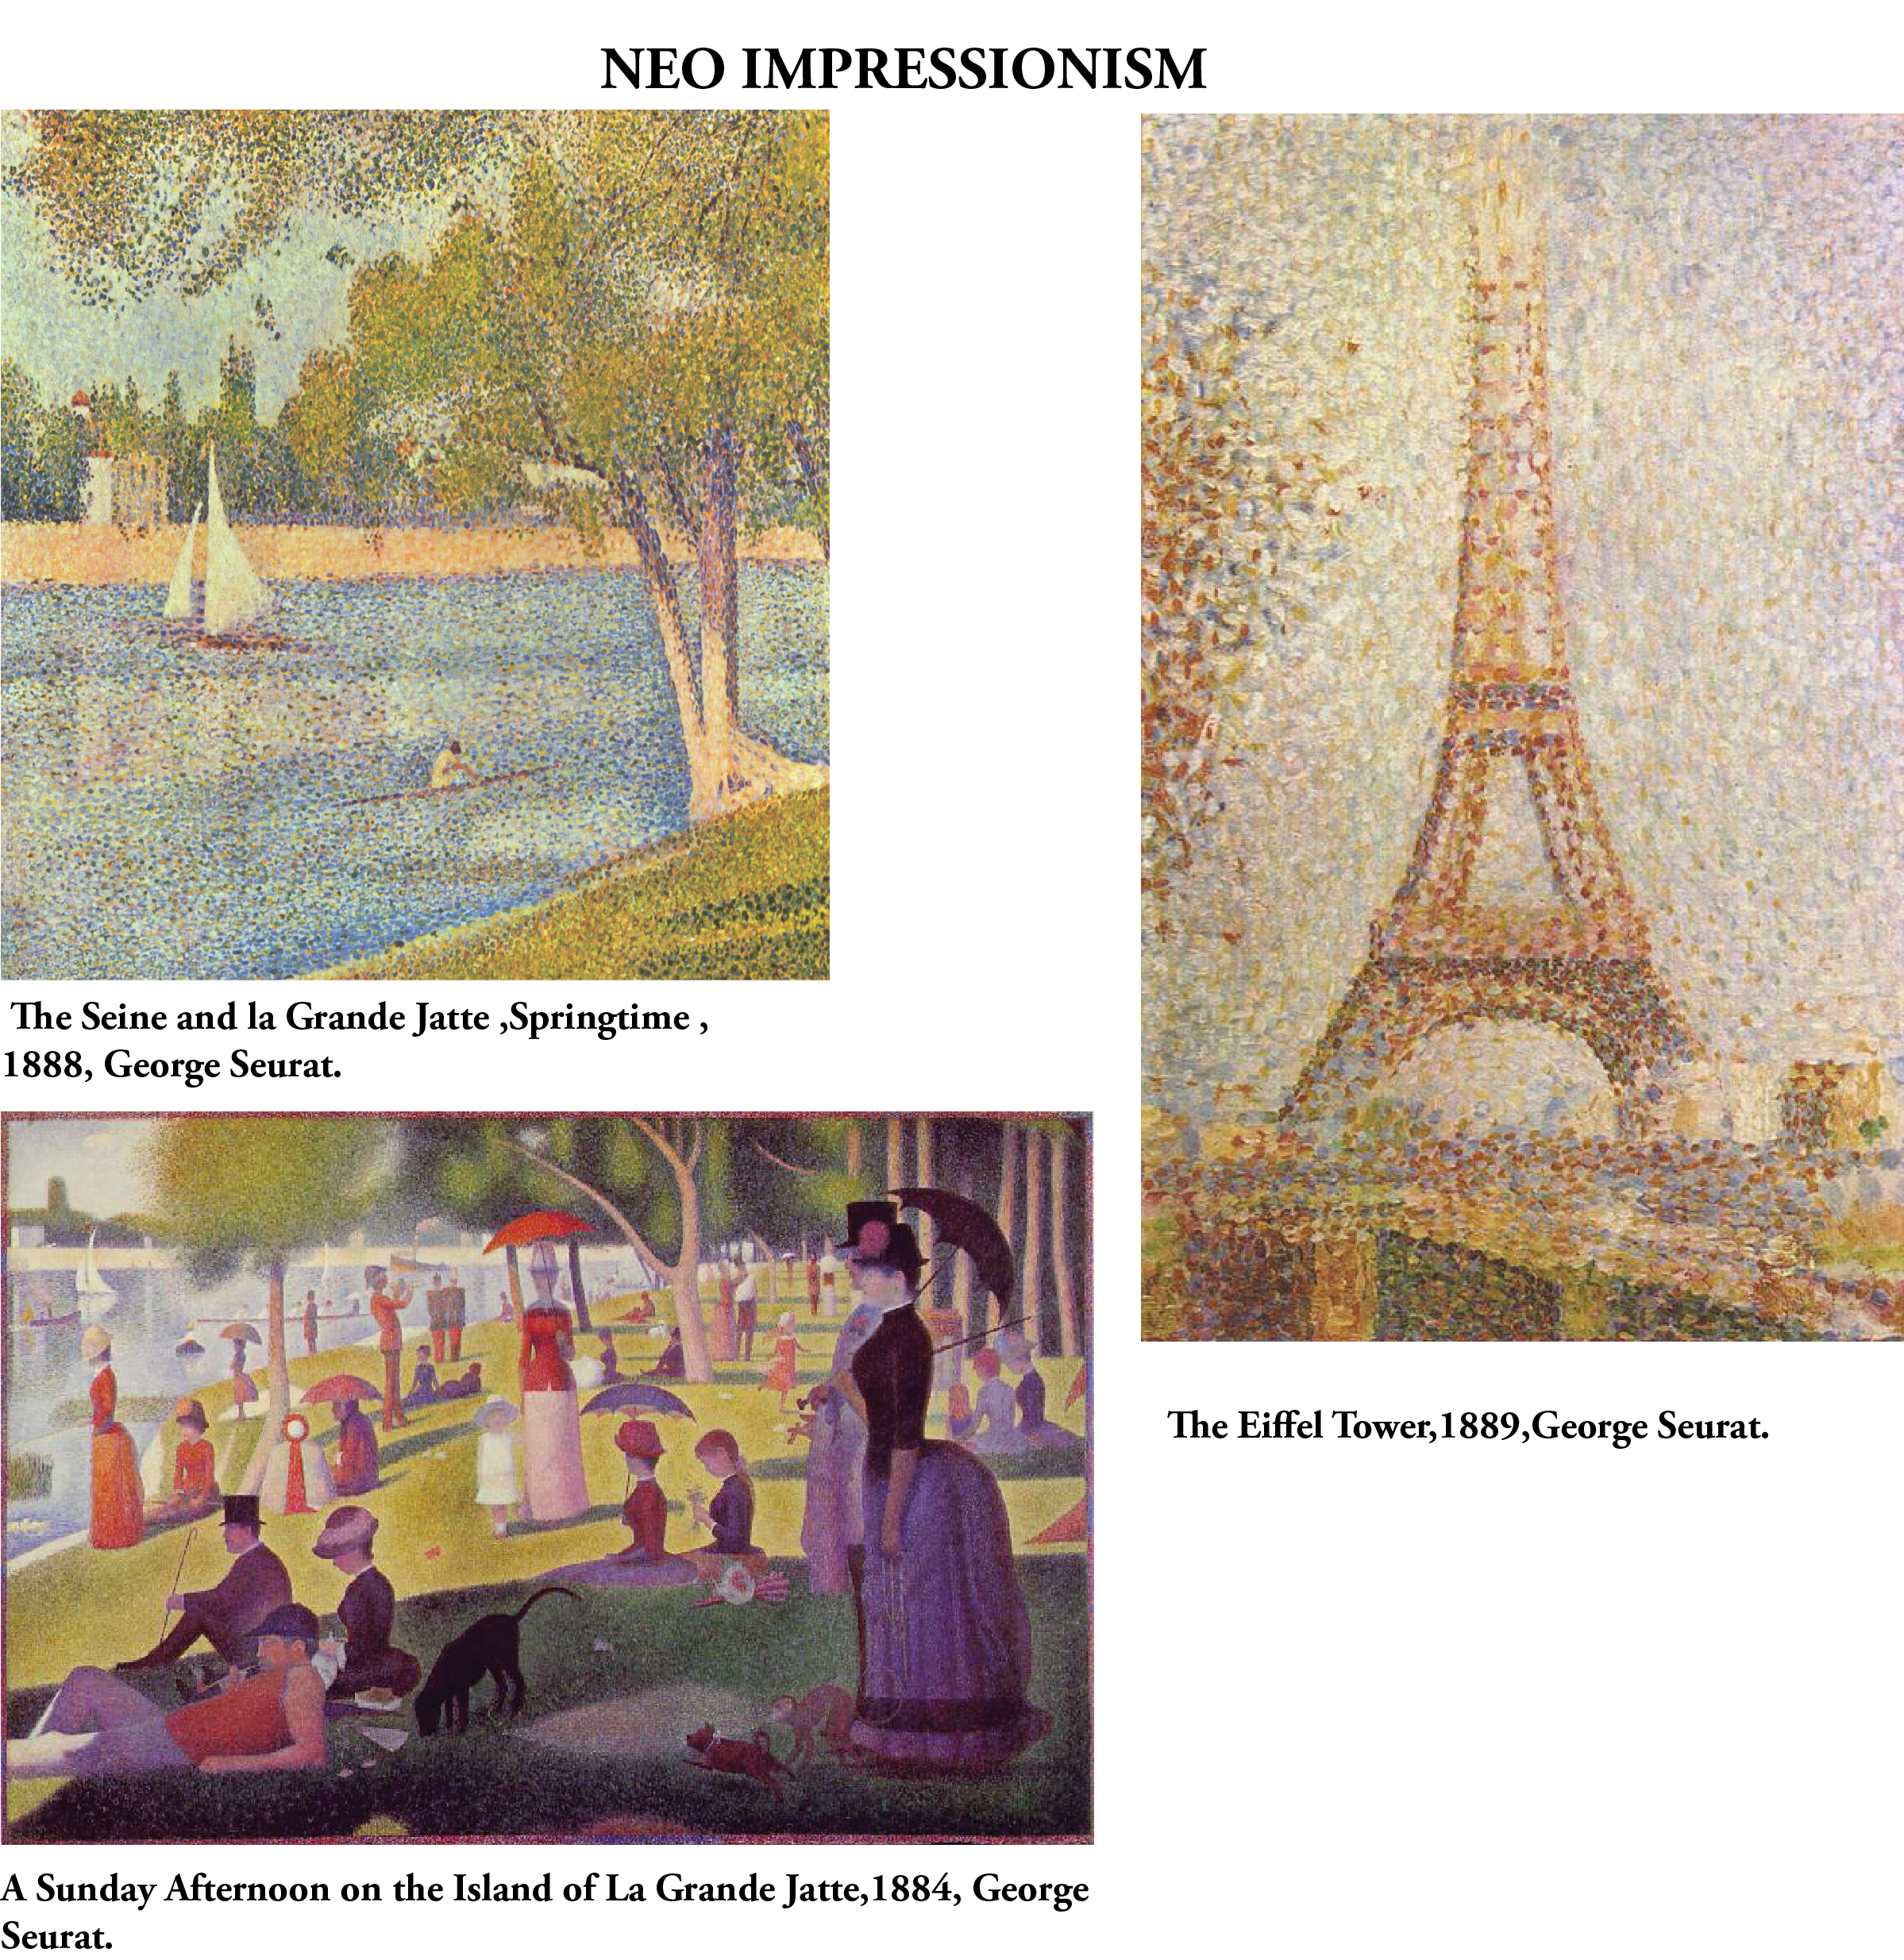 NEO-IMPRESSIONISM 1886-1906. This movement took the colours and themes of Impressionism, but rejected the Impressionists' temporary treatment of their subjects. They took a more systematic approach to art. They focused on the division of color and vision, breaking things down to a more fundamental and basic level. A glow radiates from the minuscule dots, all the same size, that are packed together to create a specific hue on the canvas. George Seurat was known for his paintings in this…